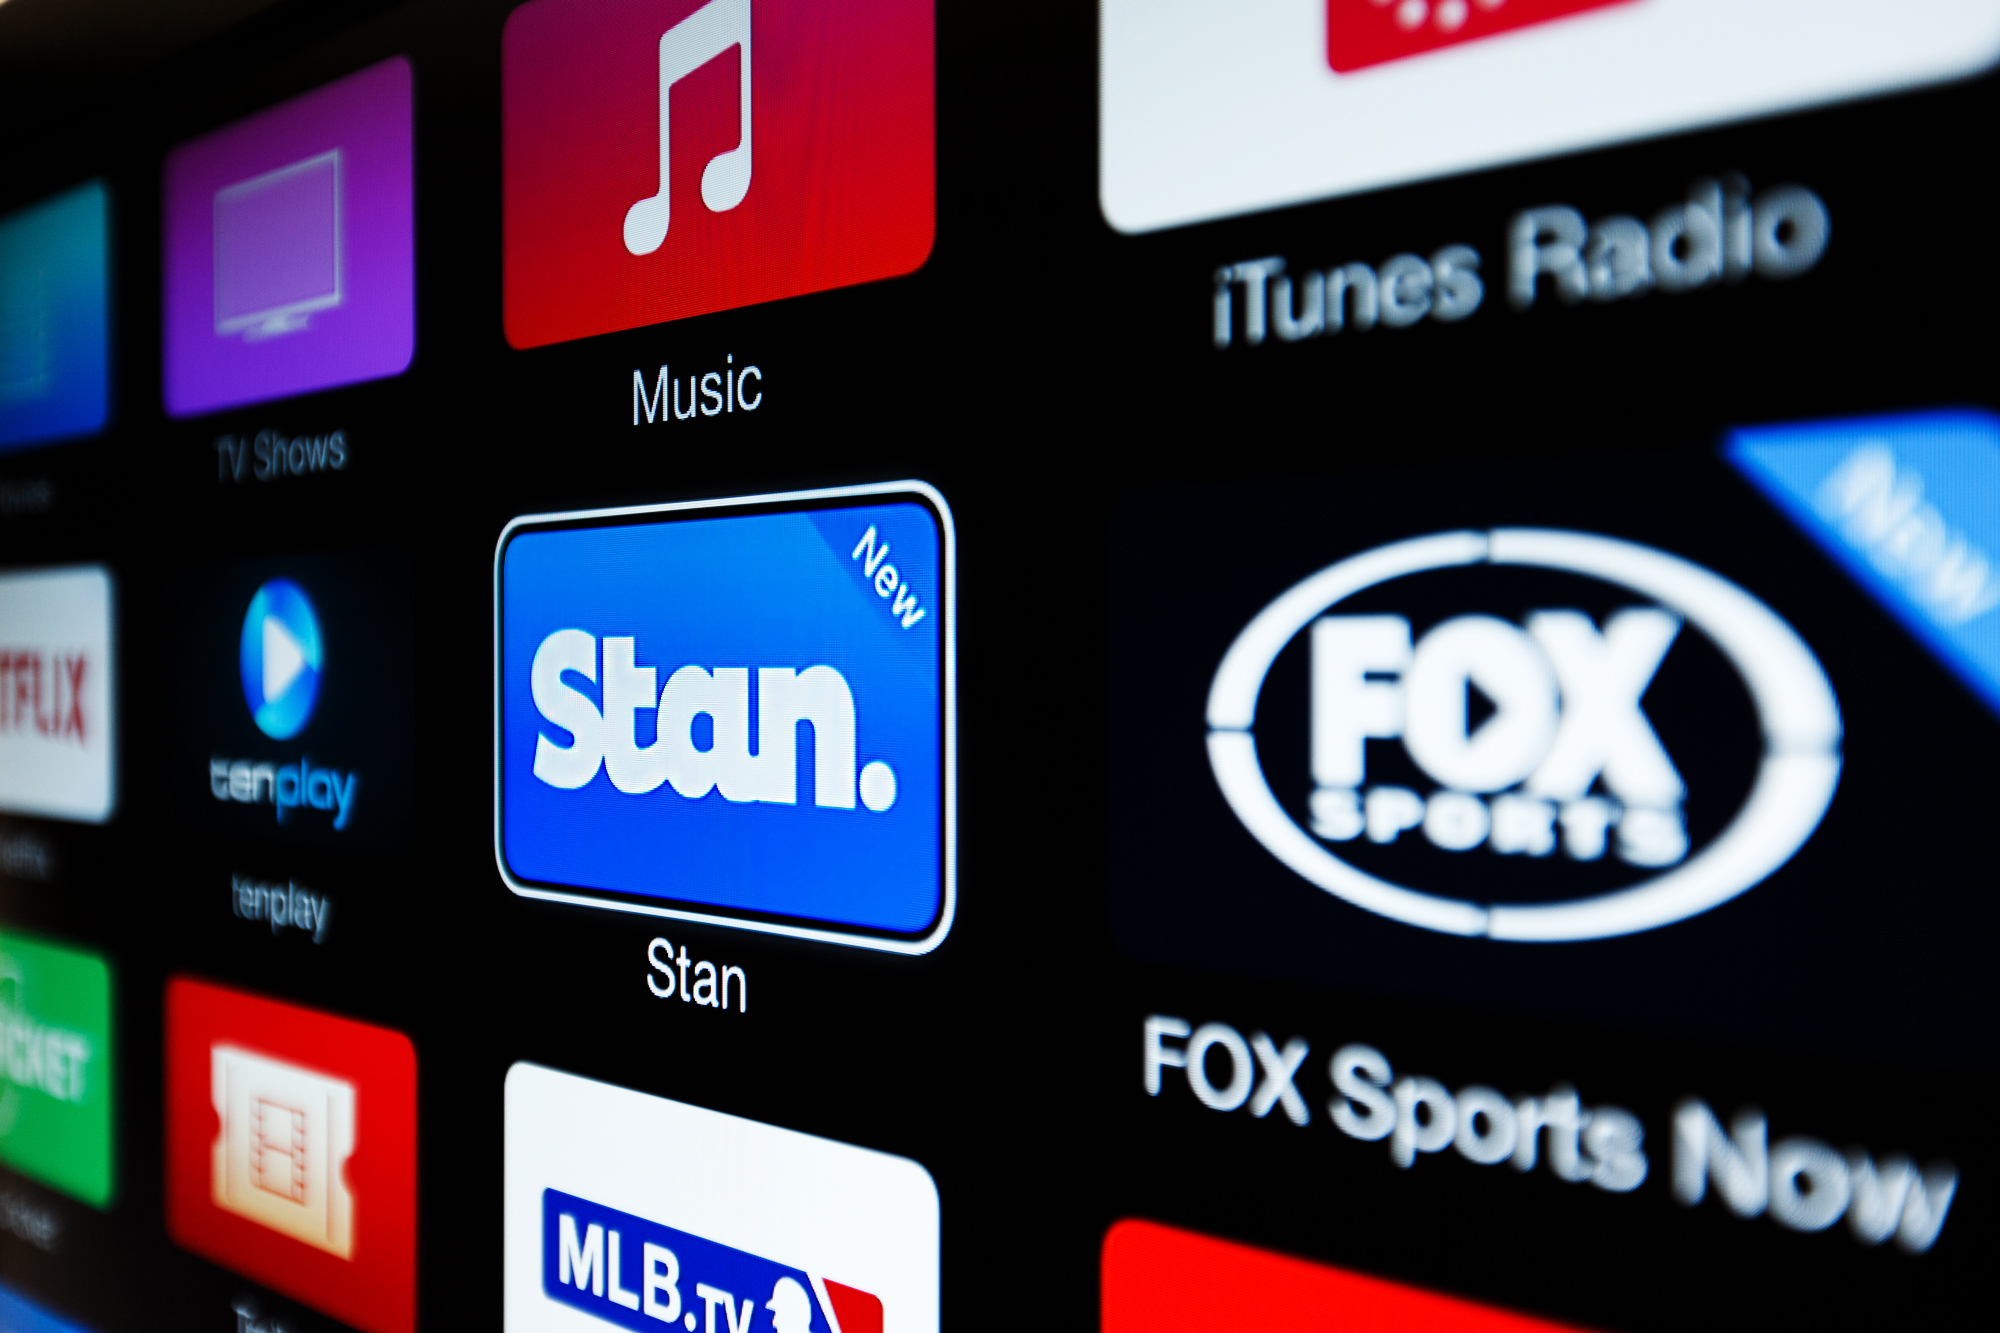 Another Aussie app for your Apple TV - Stan streaming video